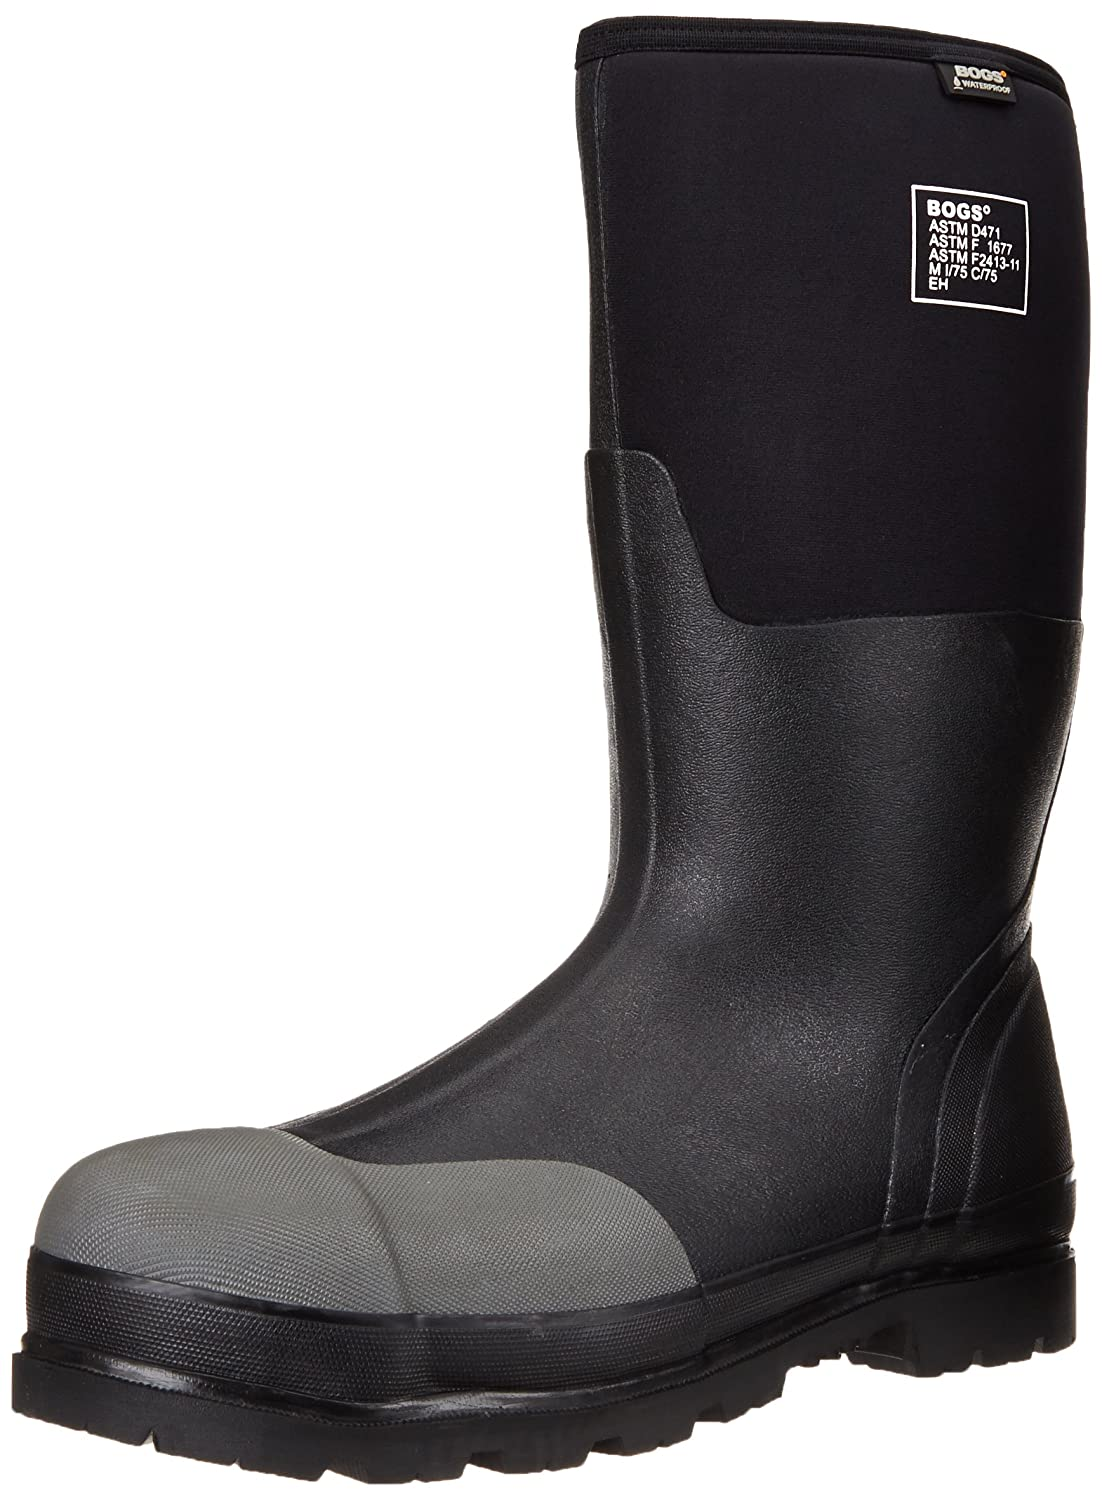 Amazon.com | Bogs Men's Forge Tall ST Waterproof Work Boot ...